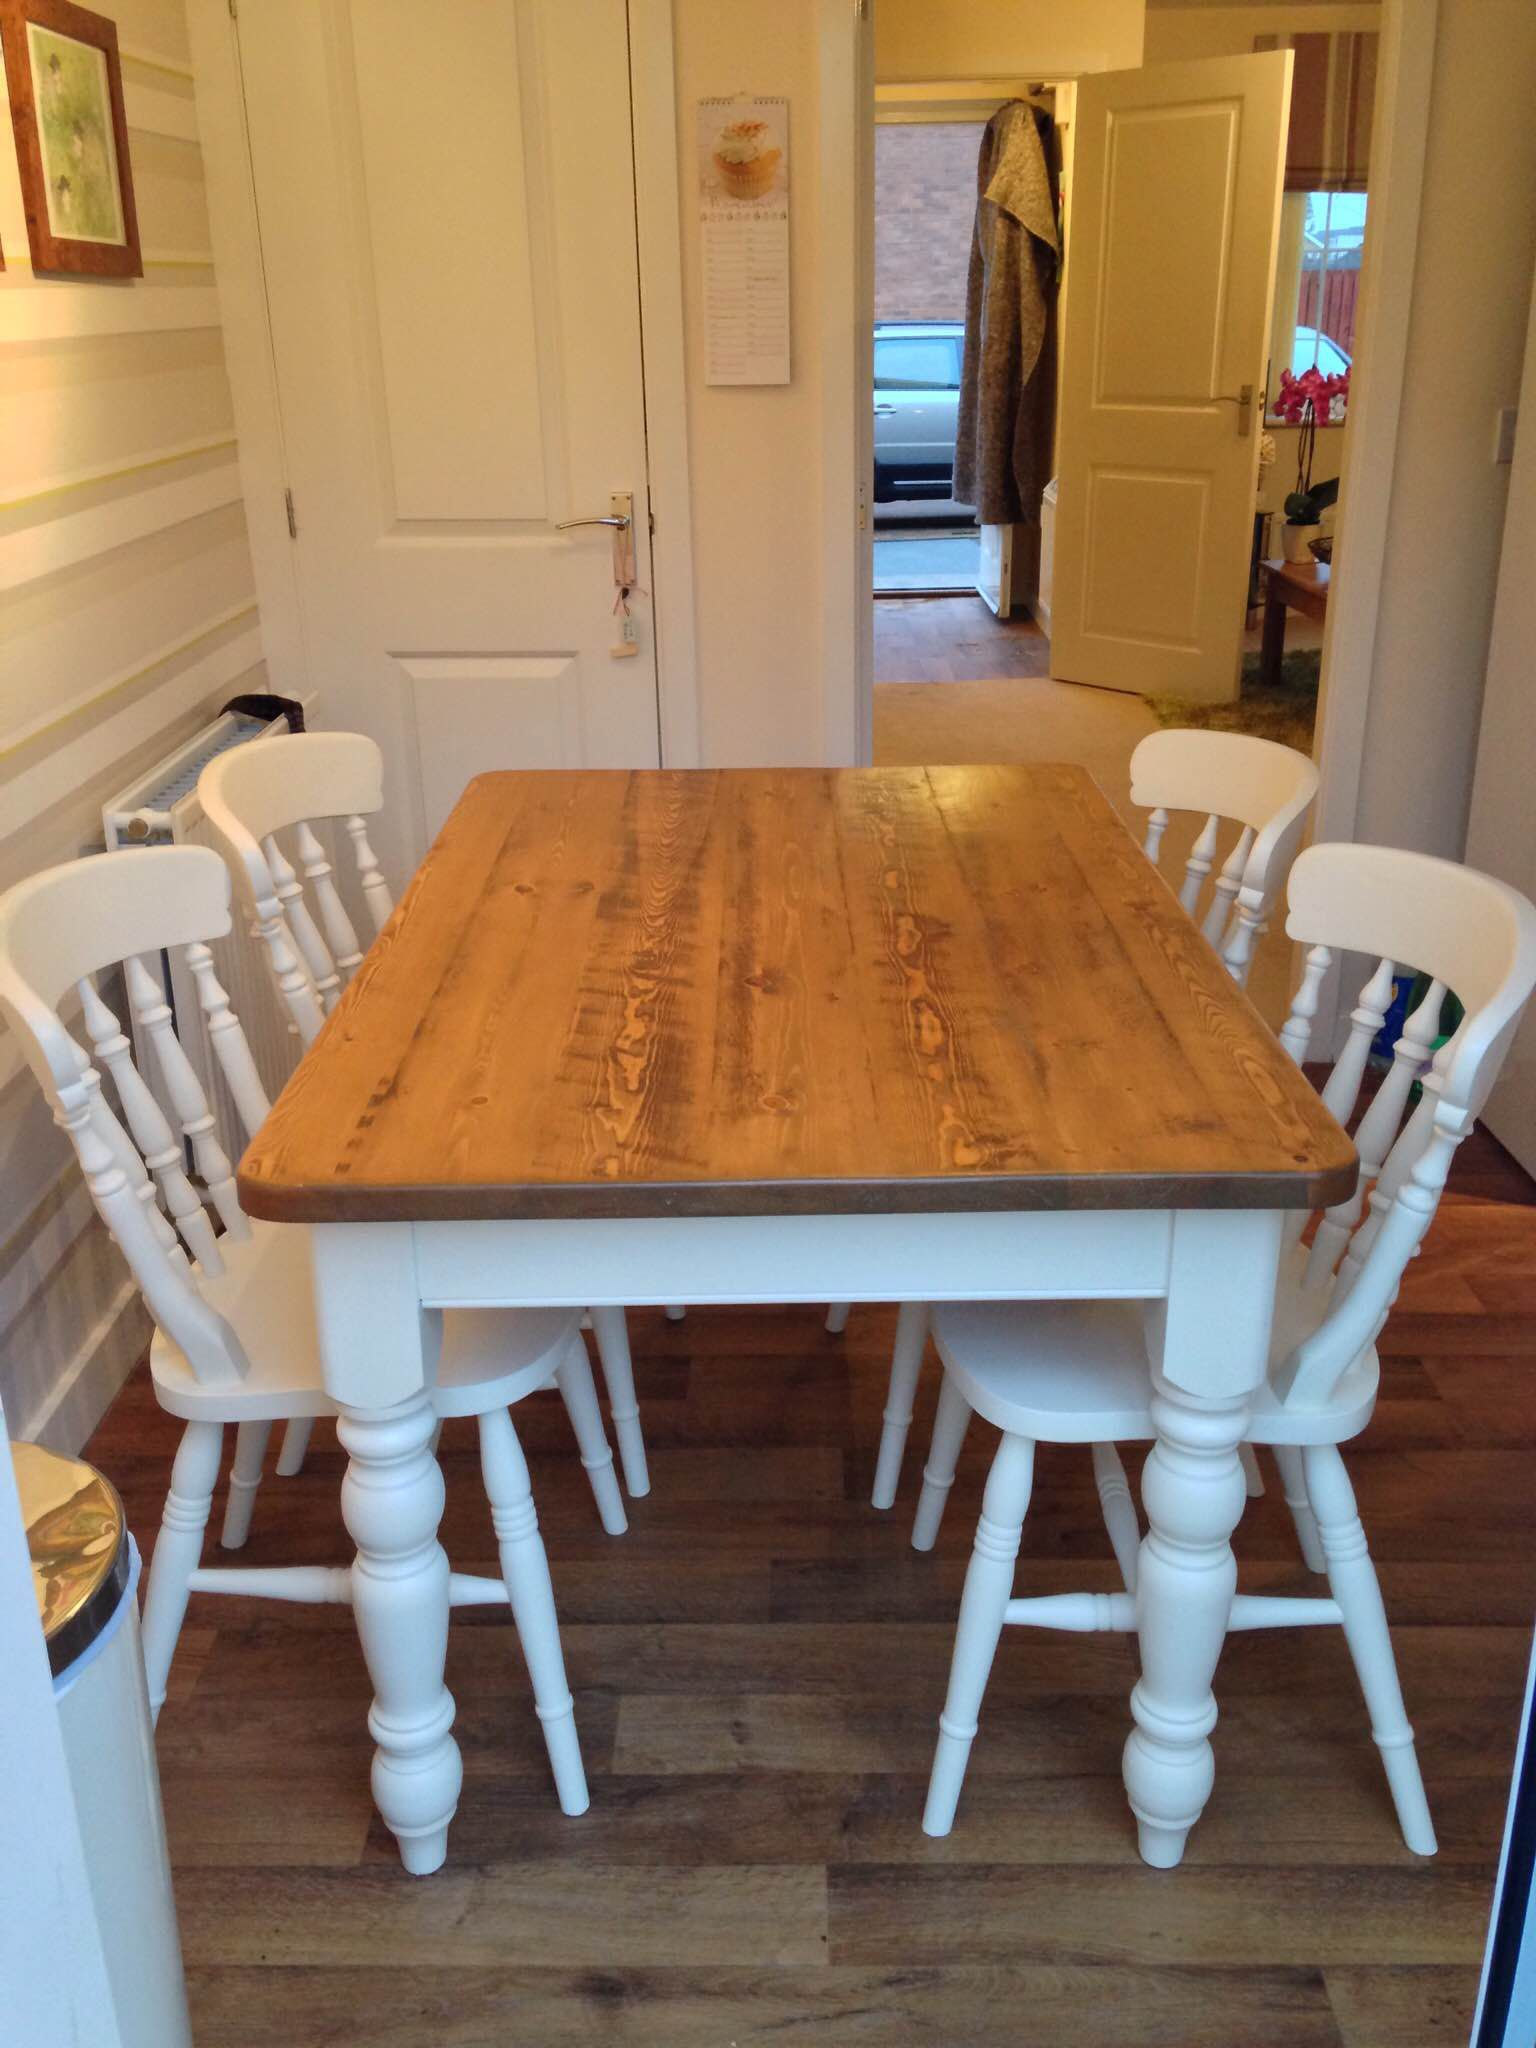 Dining room table. Sand back the table top  finish it with a hard wax  and paint the